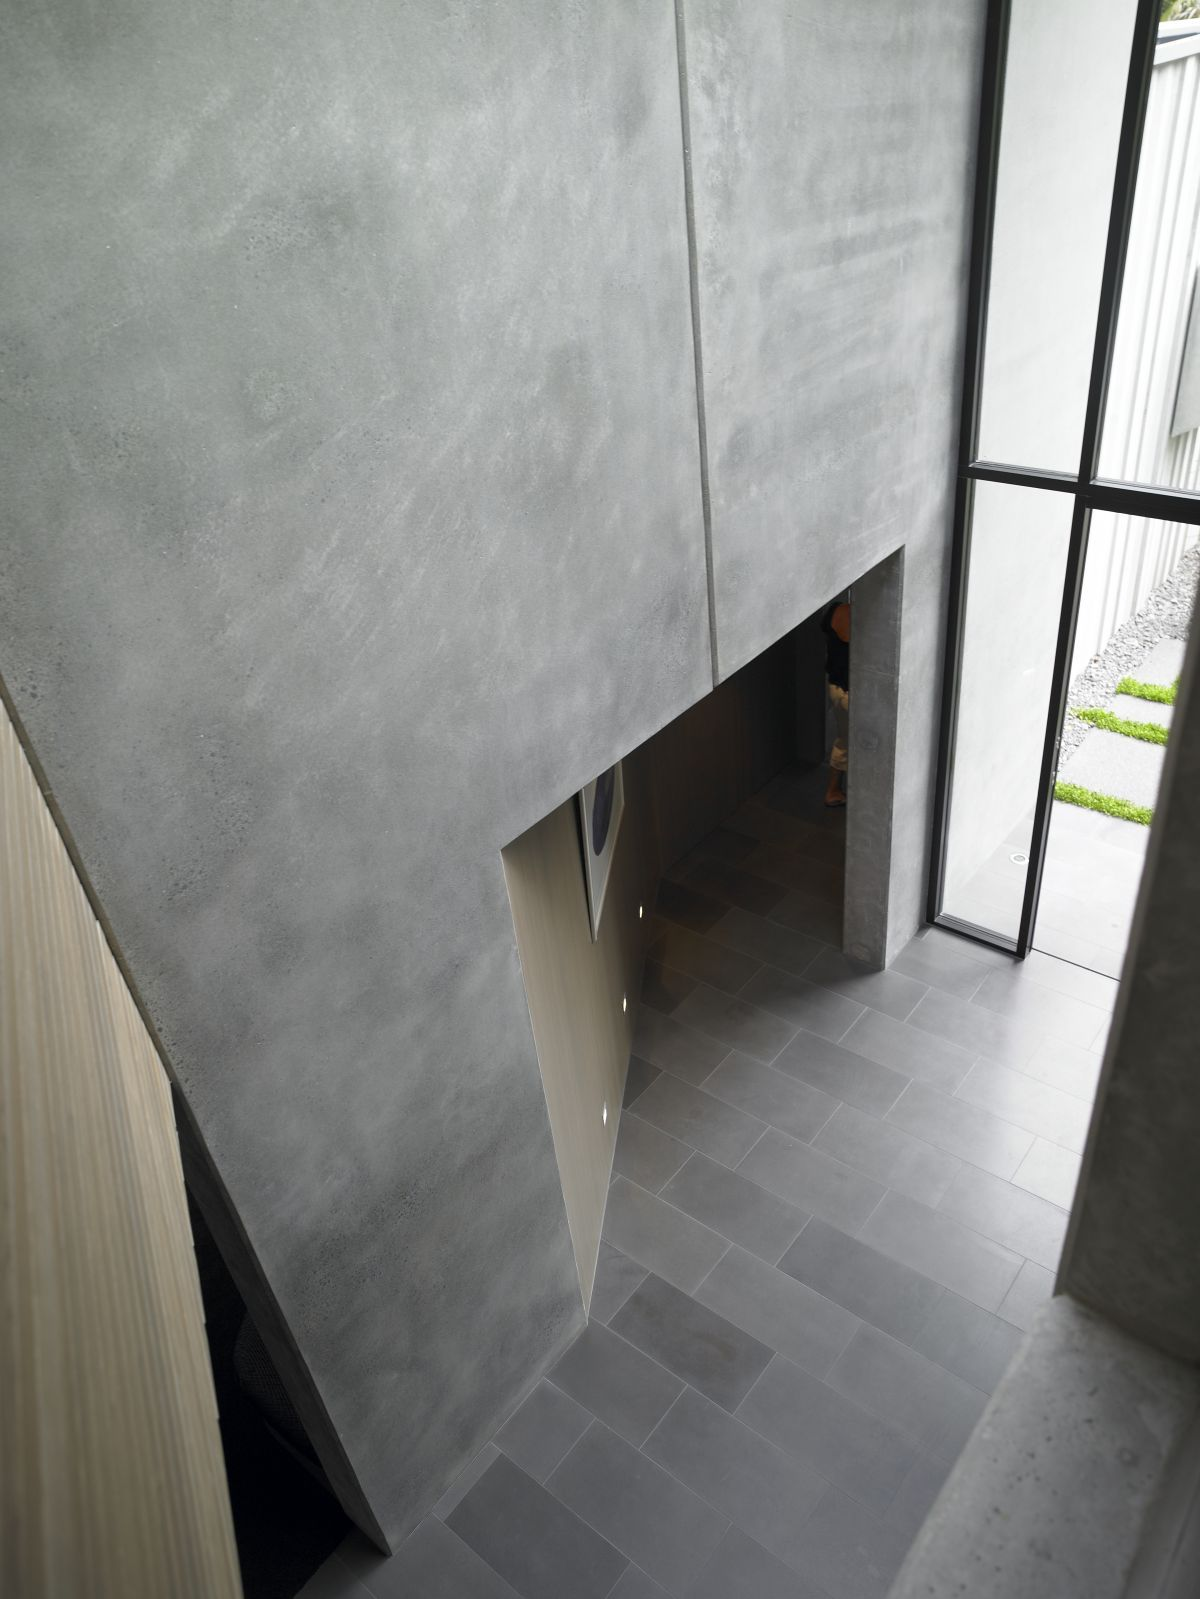 wall design concrete wall design karaka bay house resourcedir home directory conceptos arquitectura pinterest wall design concrete walls and bays